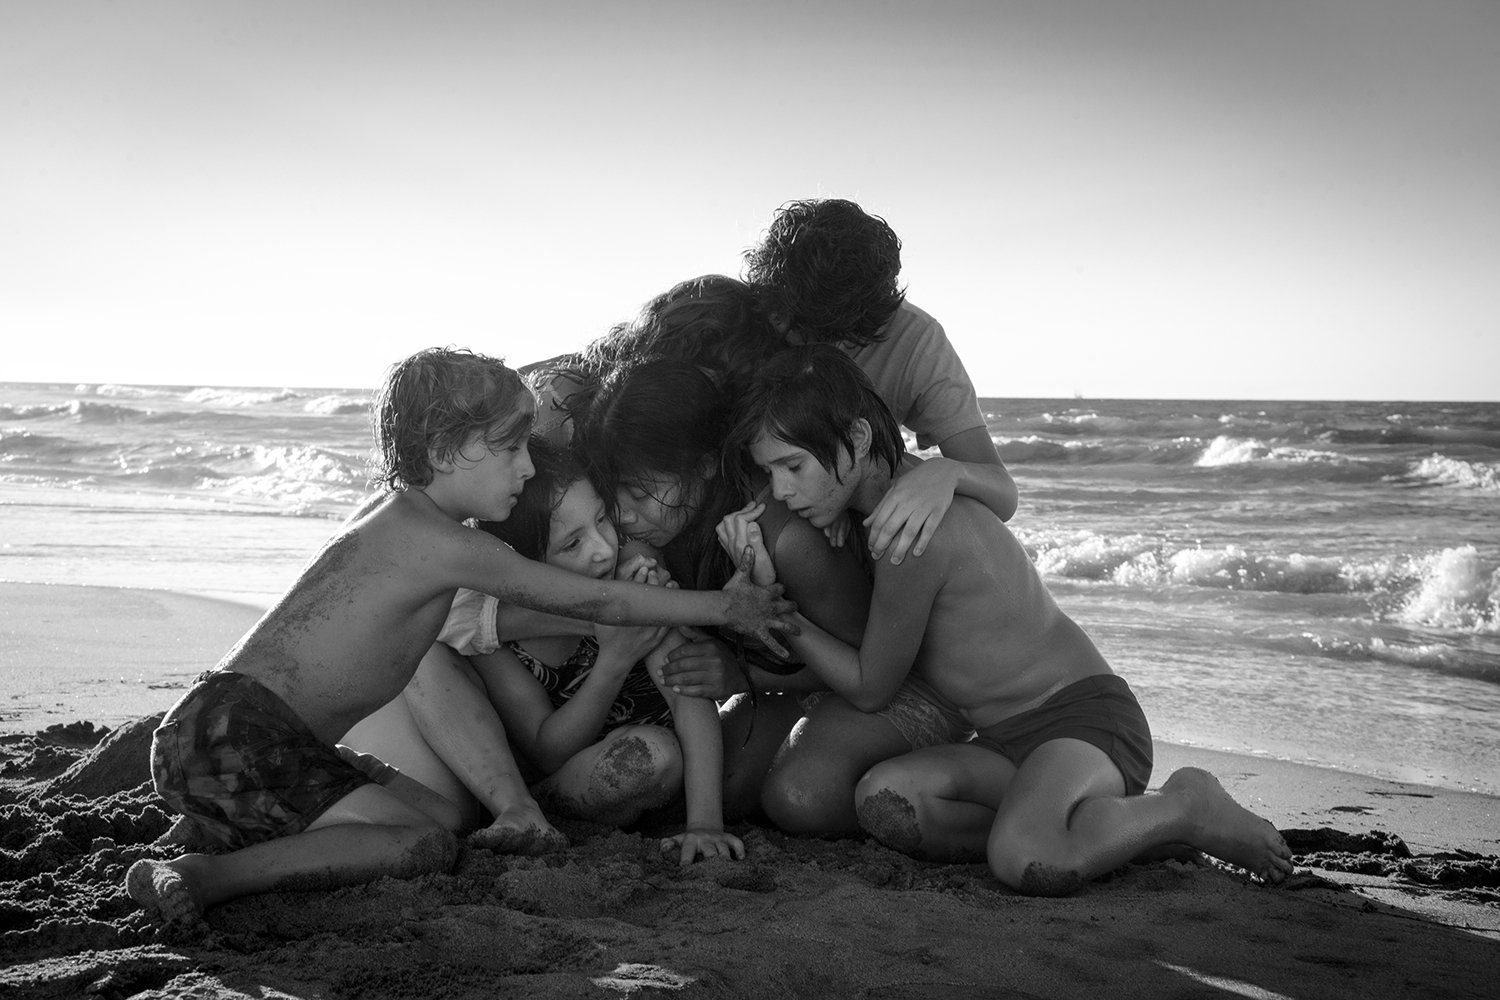 children on beach, Roma movie